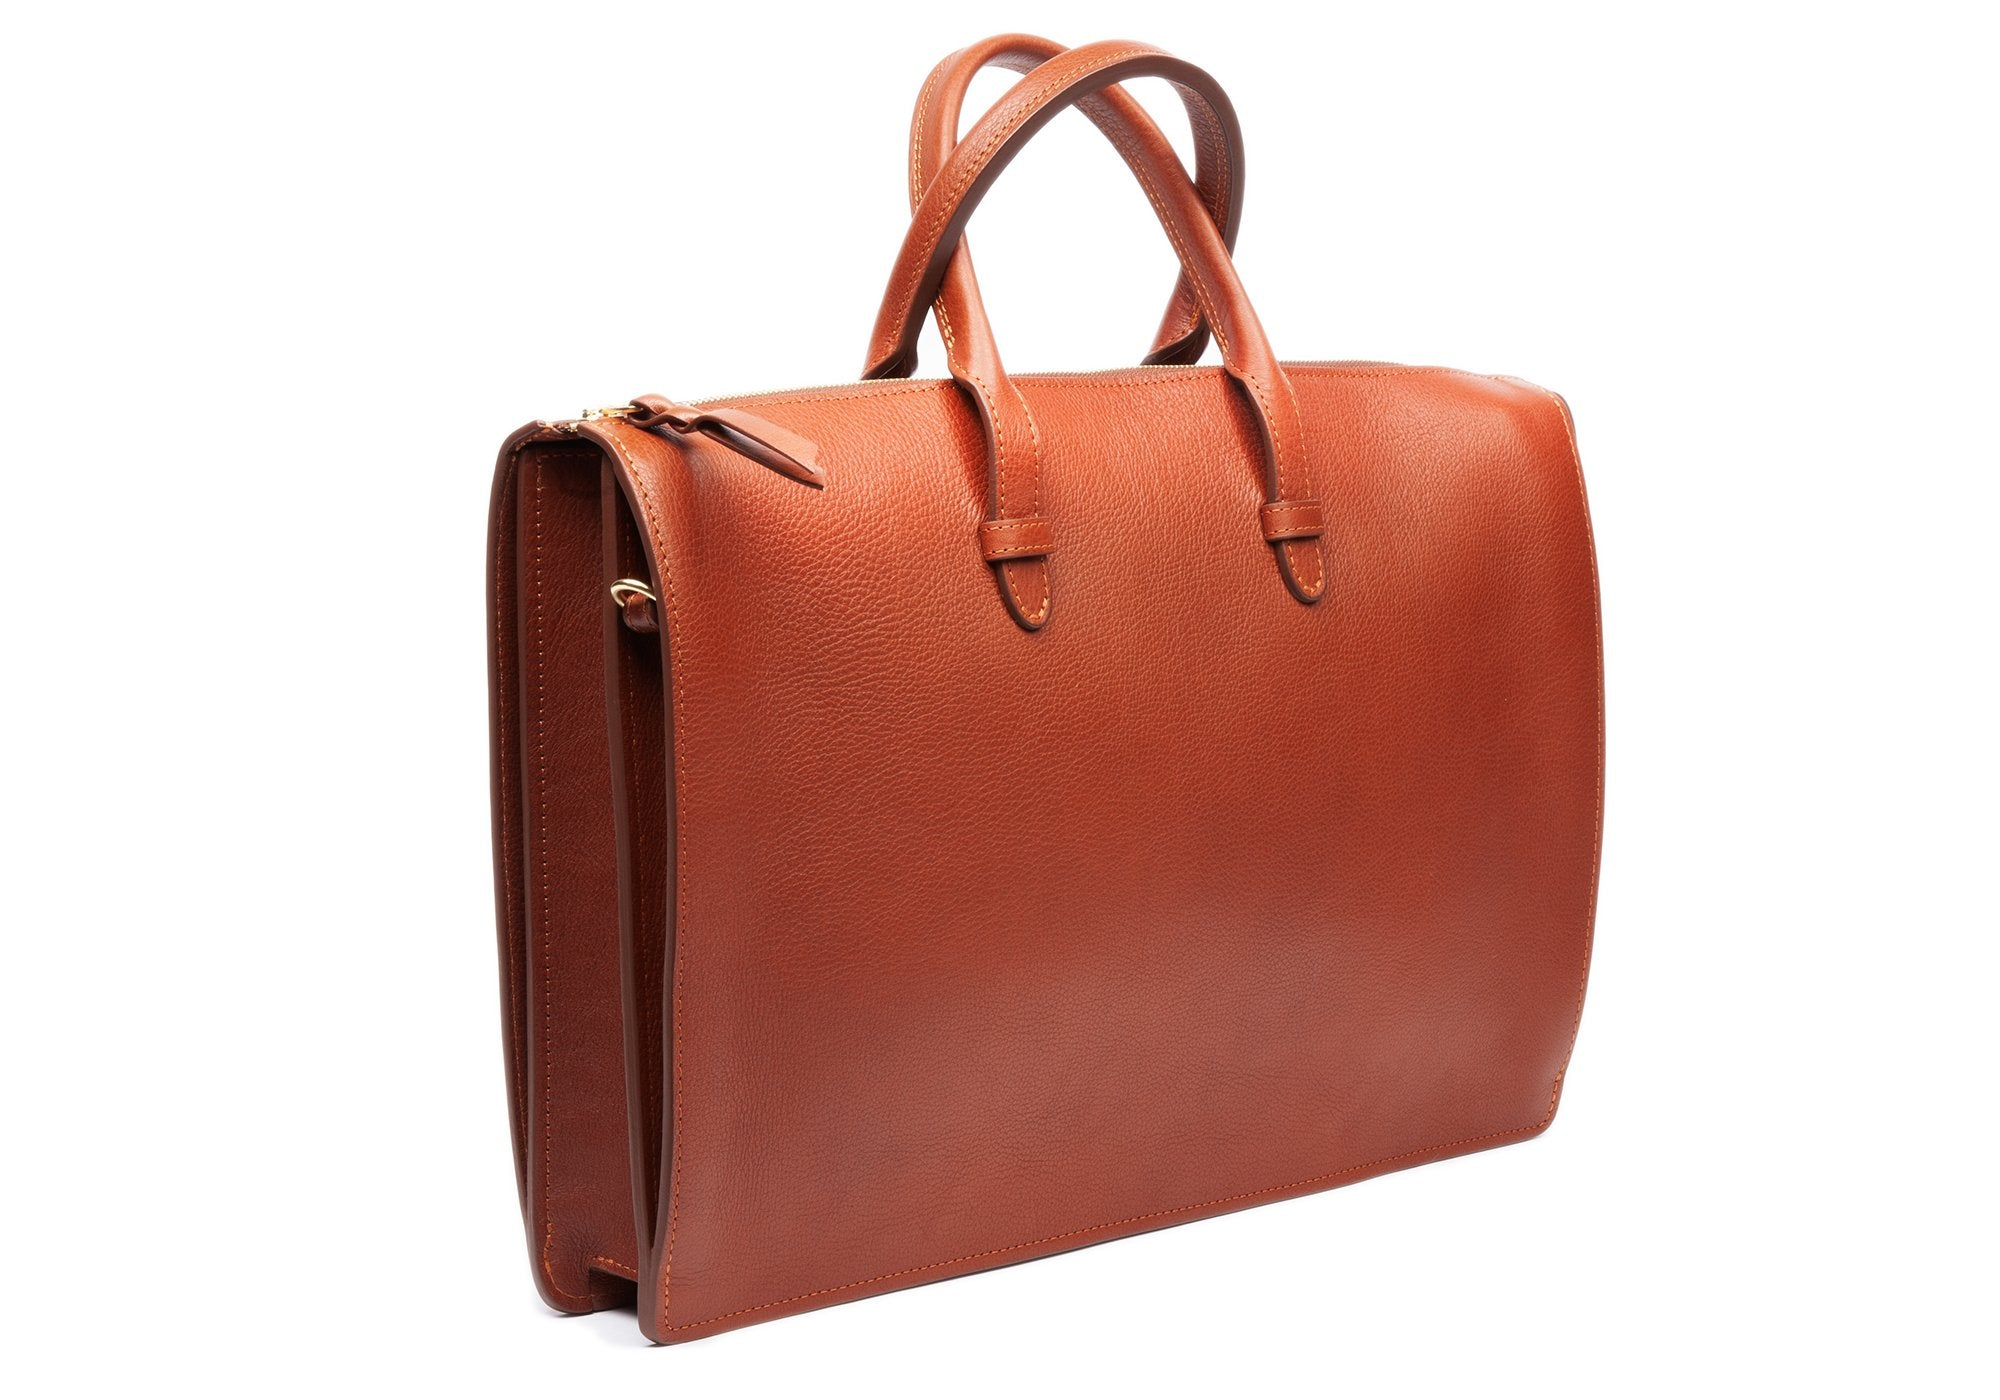 The Triumph Briefcase Saddle Tan